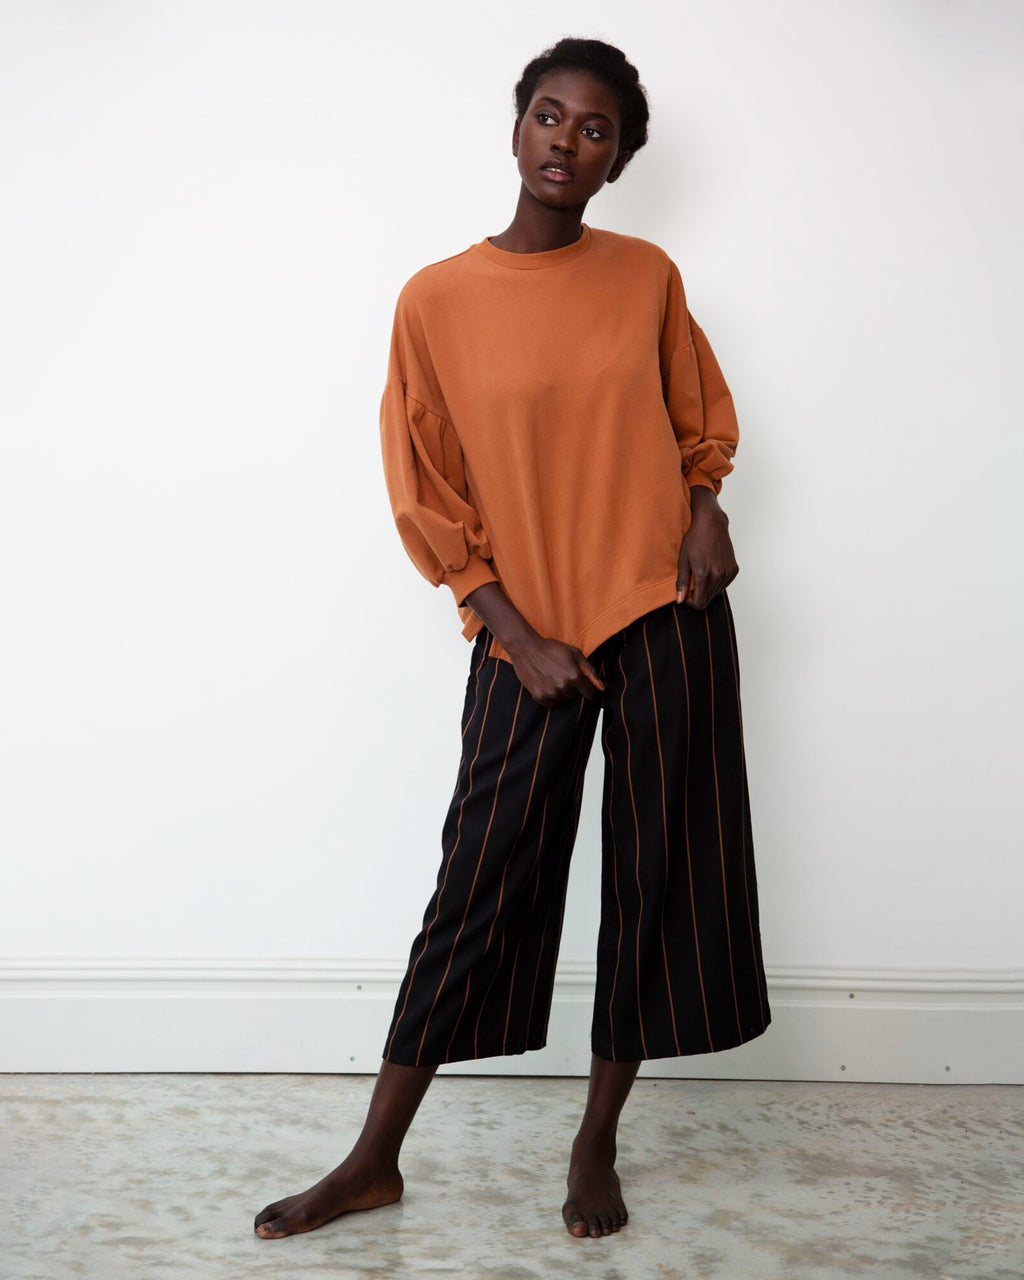 Adrienne-Sue Tencel Trousers In Black & Tan